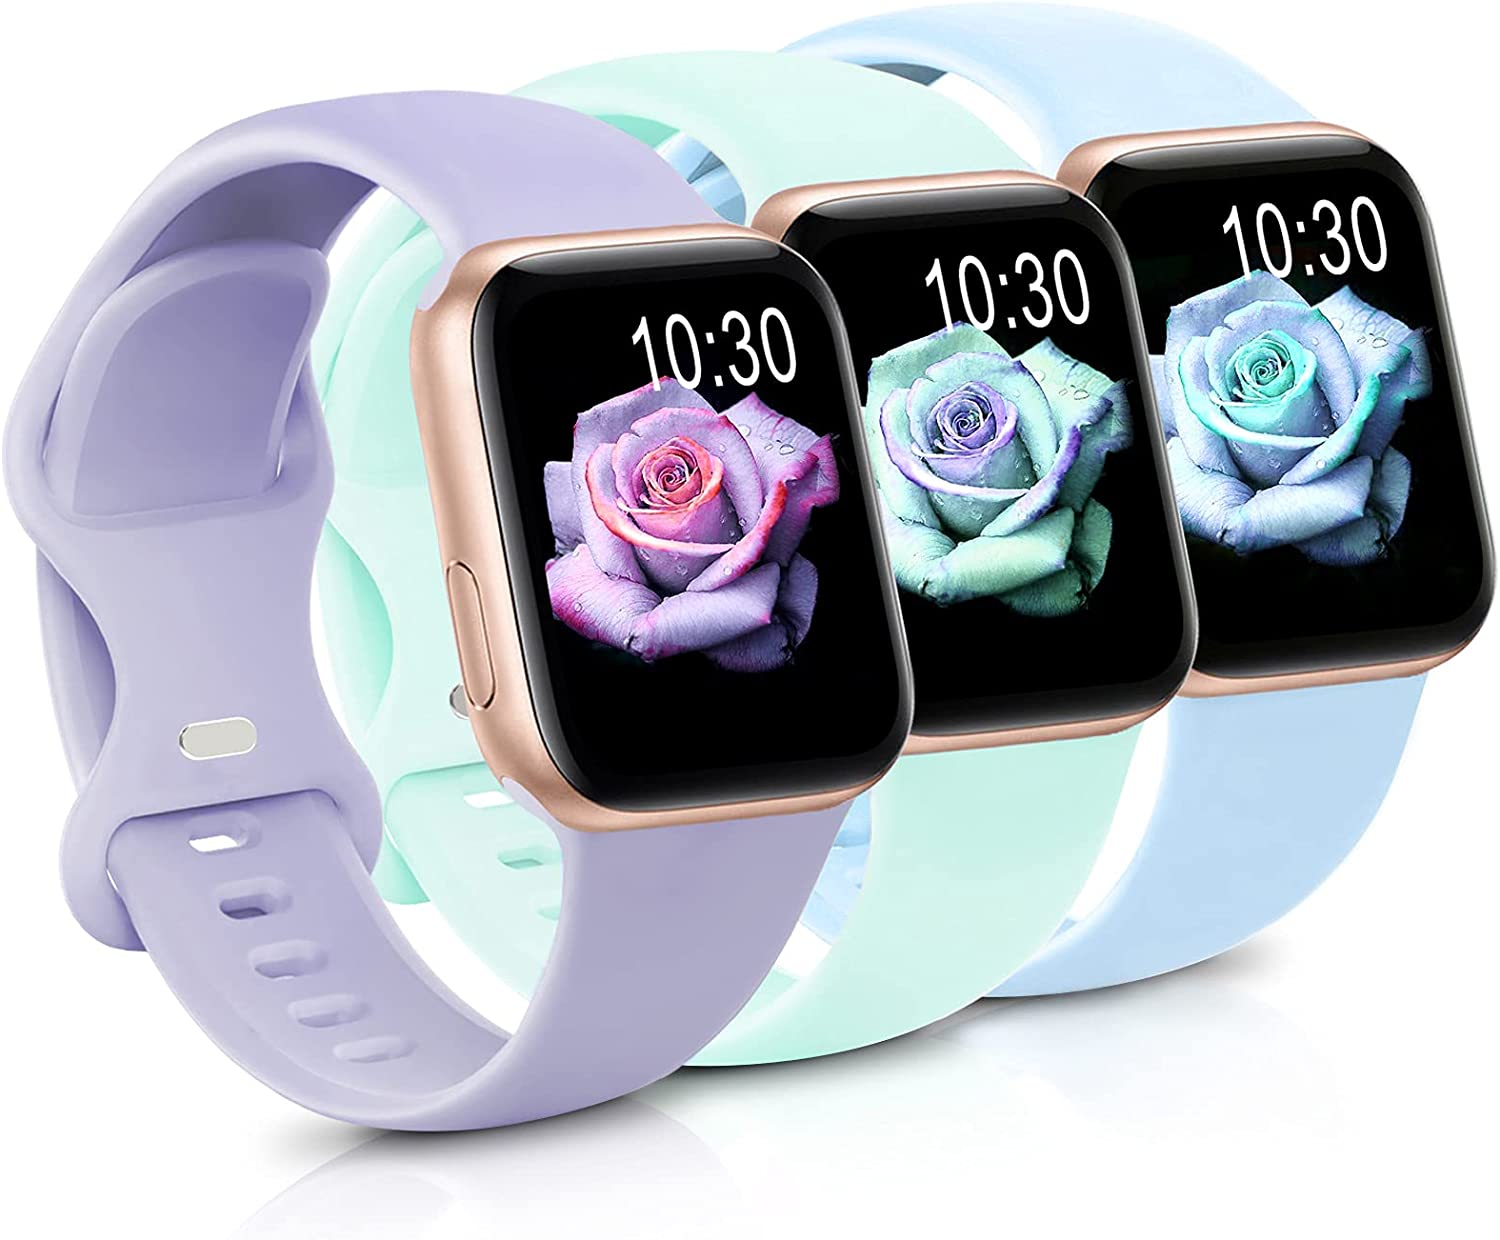 3 Pack Band Compatible with Apple Watch Bands 38mm 40mm 42mm 44mm for Women Men, Soft Silicone Sport Replacement Strap Wristbands Compatible with iWatch Series 6 5 4 3 2 1 SE